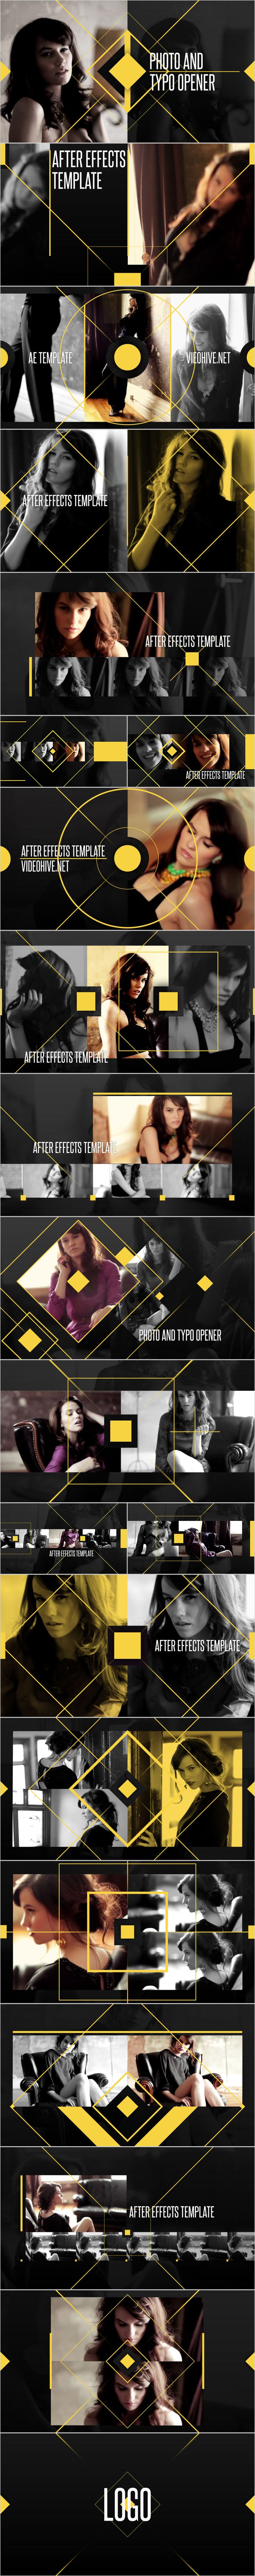 After Effects Project Files - Photo and Typo Opener | VideoHive